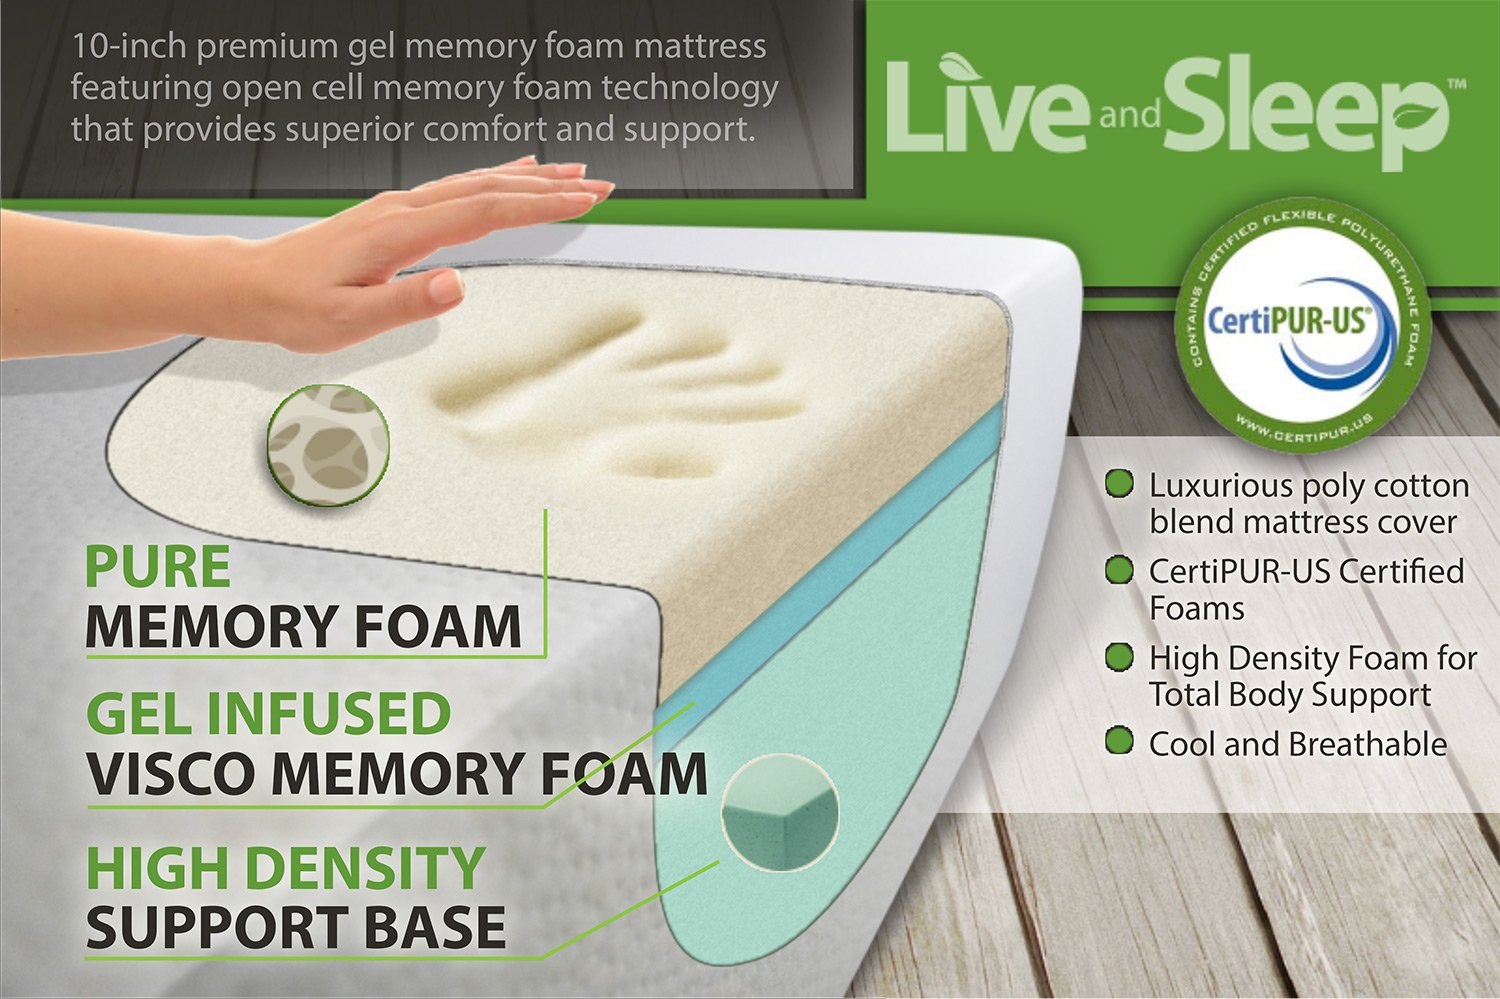 amazoncom live and sleep resort elite queen size 10inch firm cooling gel memory foam mattress with premium form pillow certipur certified plus 20year